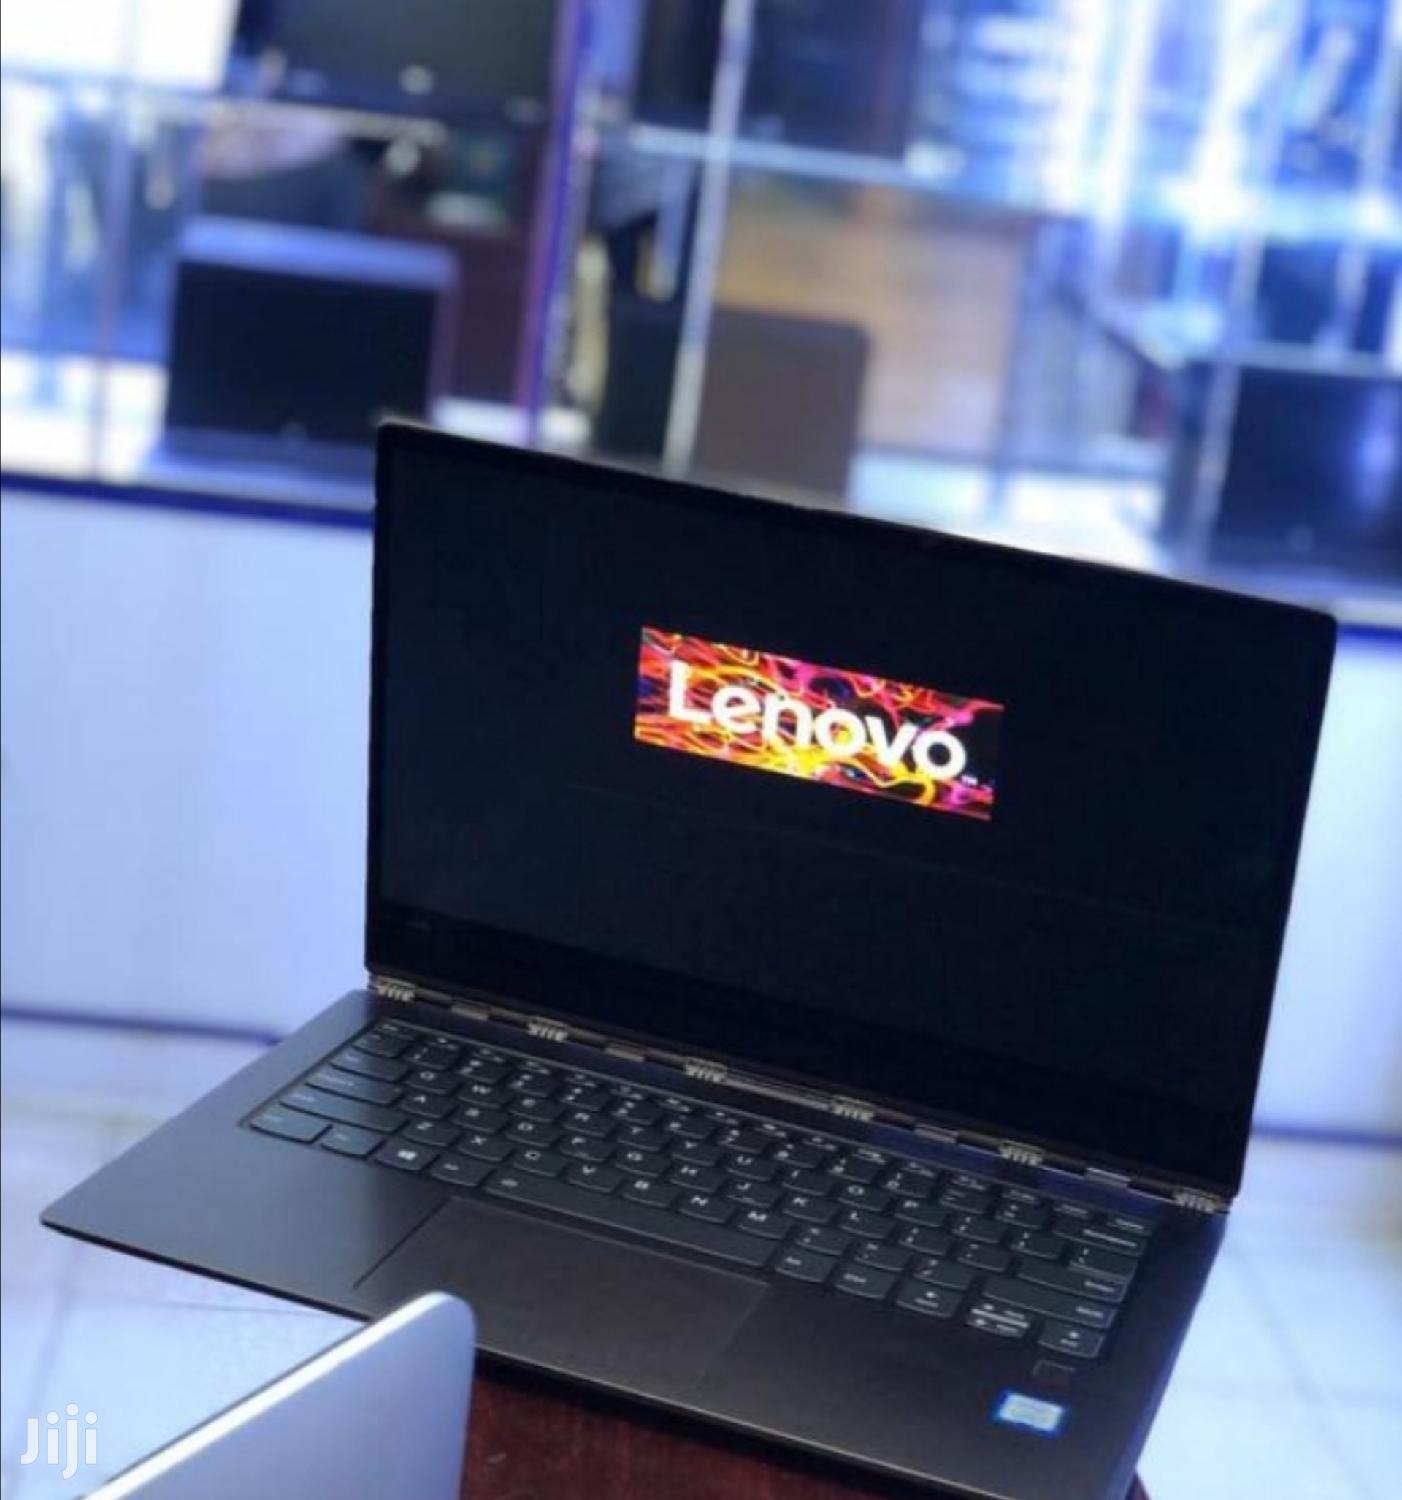 New Laptop Lenovo Yoga 700 8GB Intel Core I7 SSD 512GB | Laptops & Computers for sale in Kampala, Central Region, Uganda